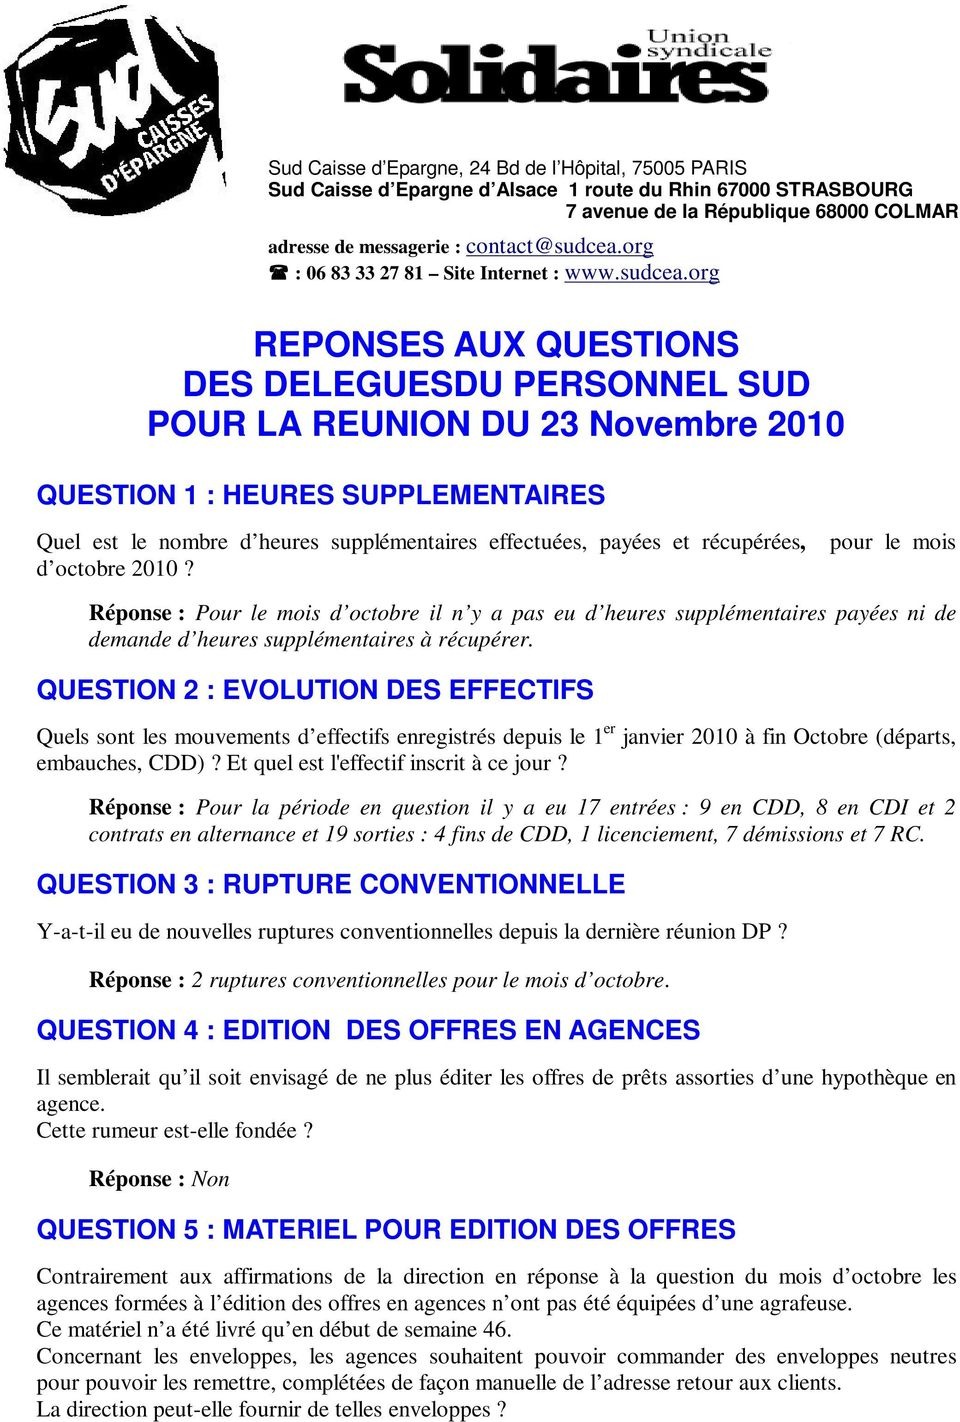 org REPONSES AUX QUESTIONS DES DELEGUESDU PERSONNEL SUD POUR LA REUNION DU 23 Novembre 2010 QUESTION 1 : HEURES SUPPLEMENTAIRES Quel est le nombre d heures supplémentaires effectuées, payées et